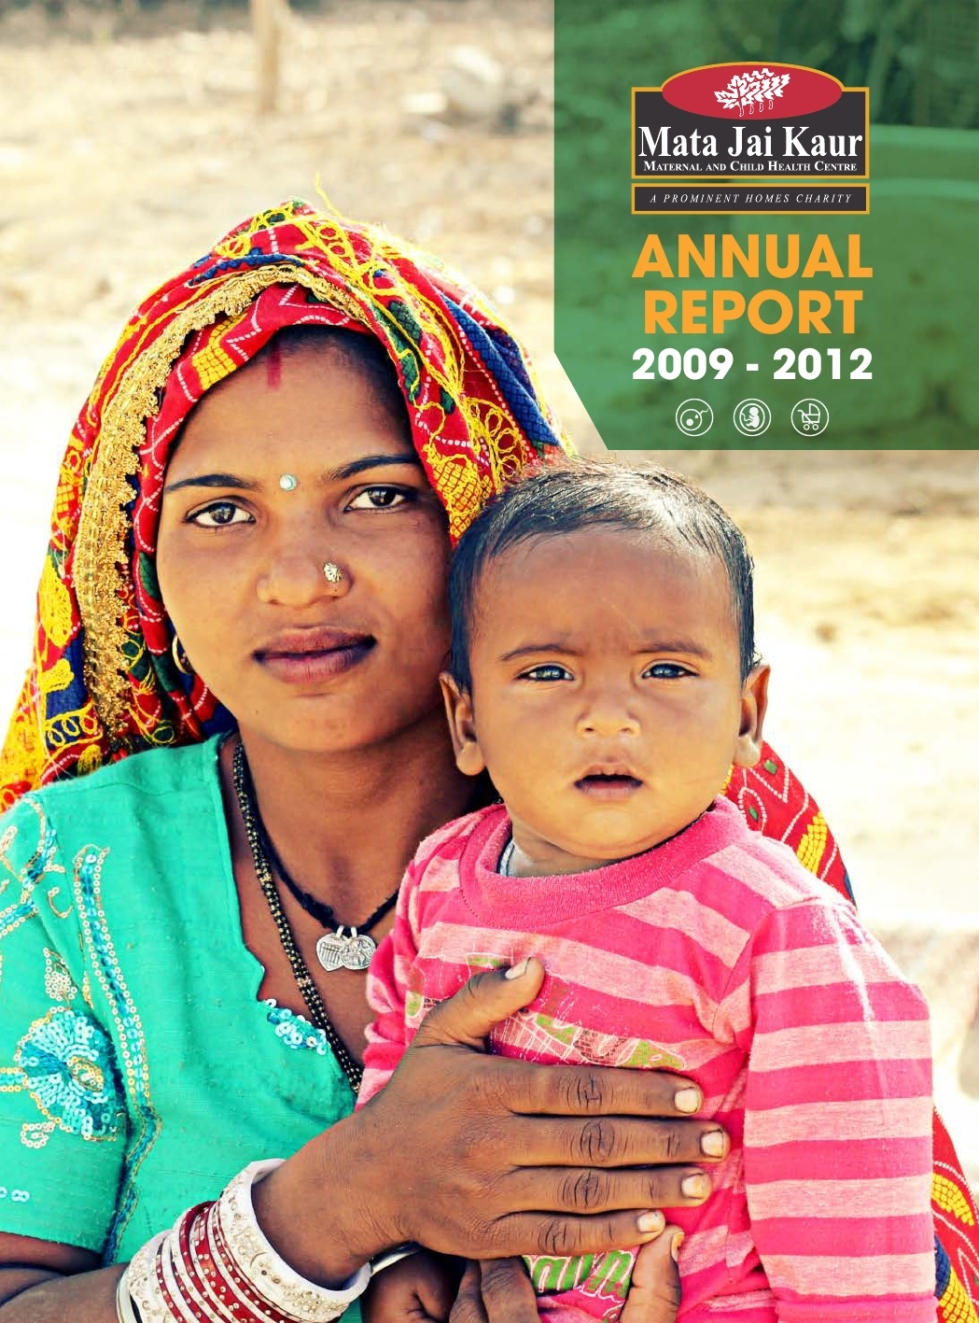 MJK-MCHC Annual Report 2009-2012